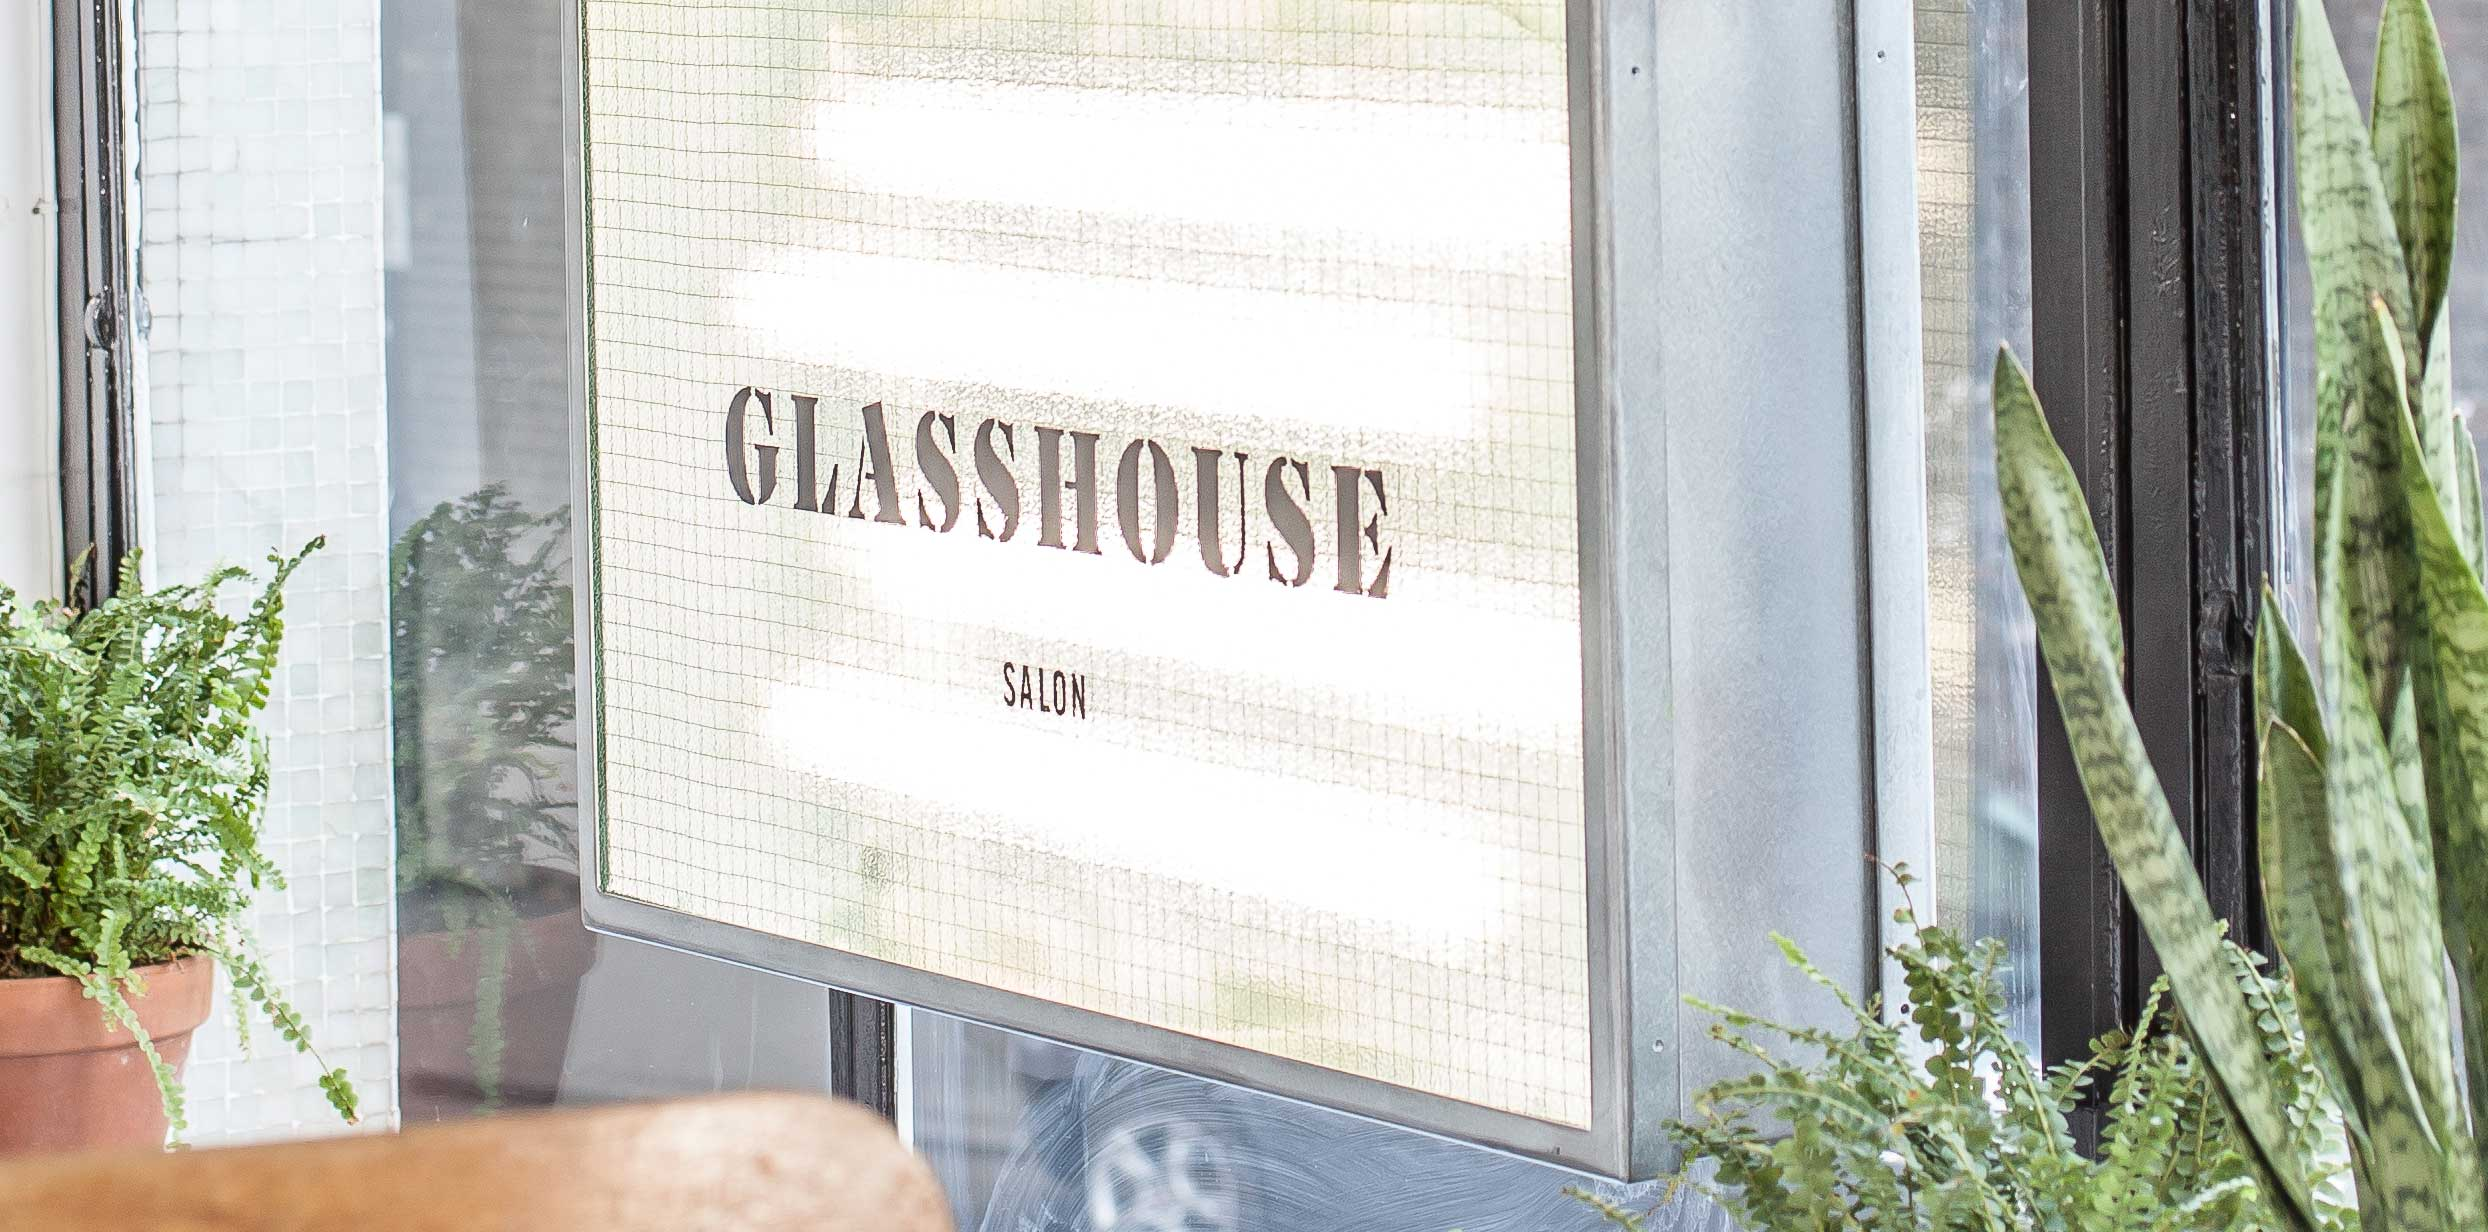 Glasshouse Salon